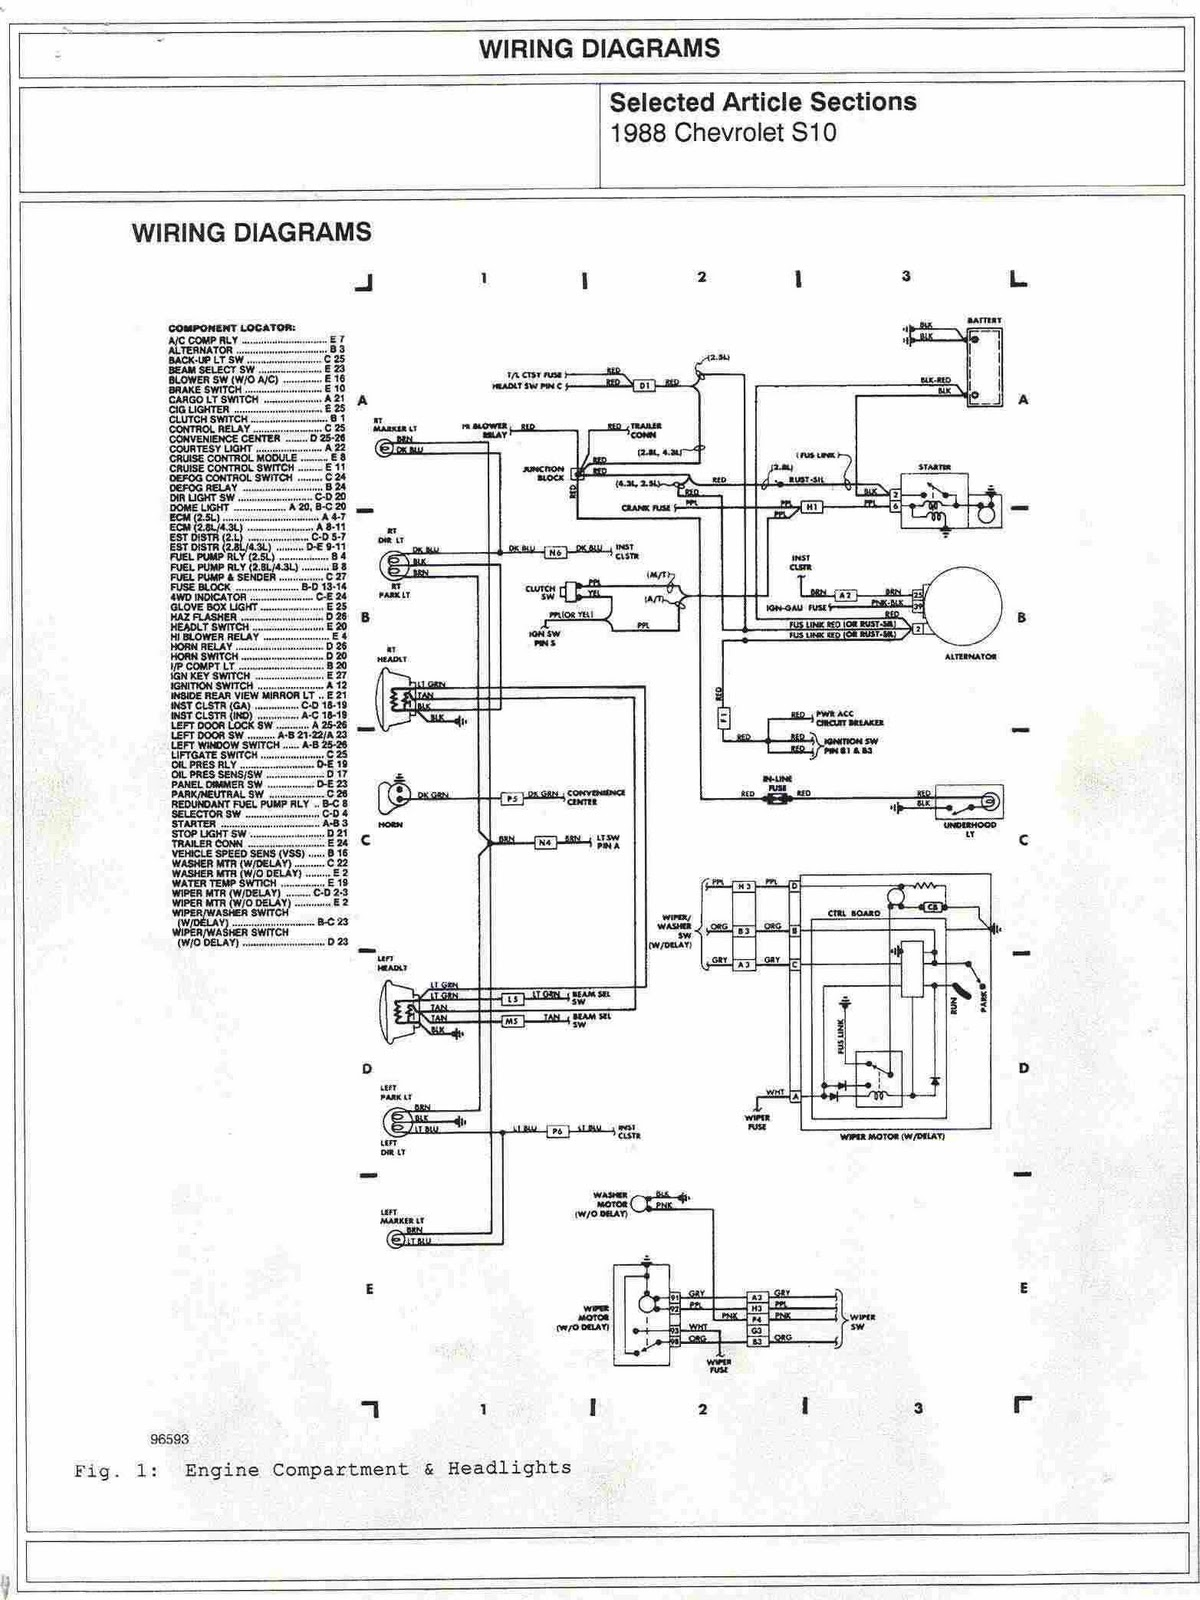 1989 Toyota Pickup Engine Diagram Wiring Library 300zx 87 Headlight